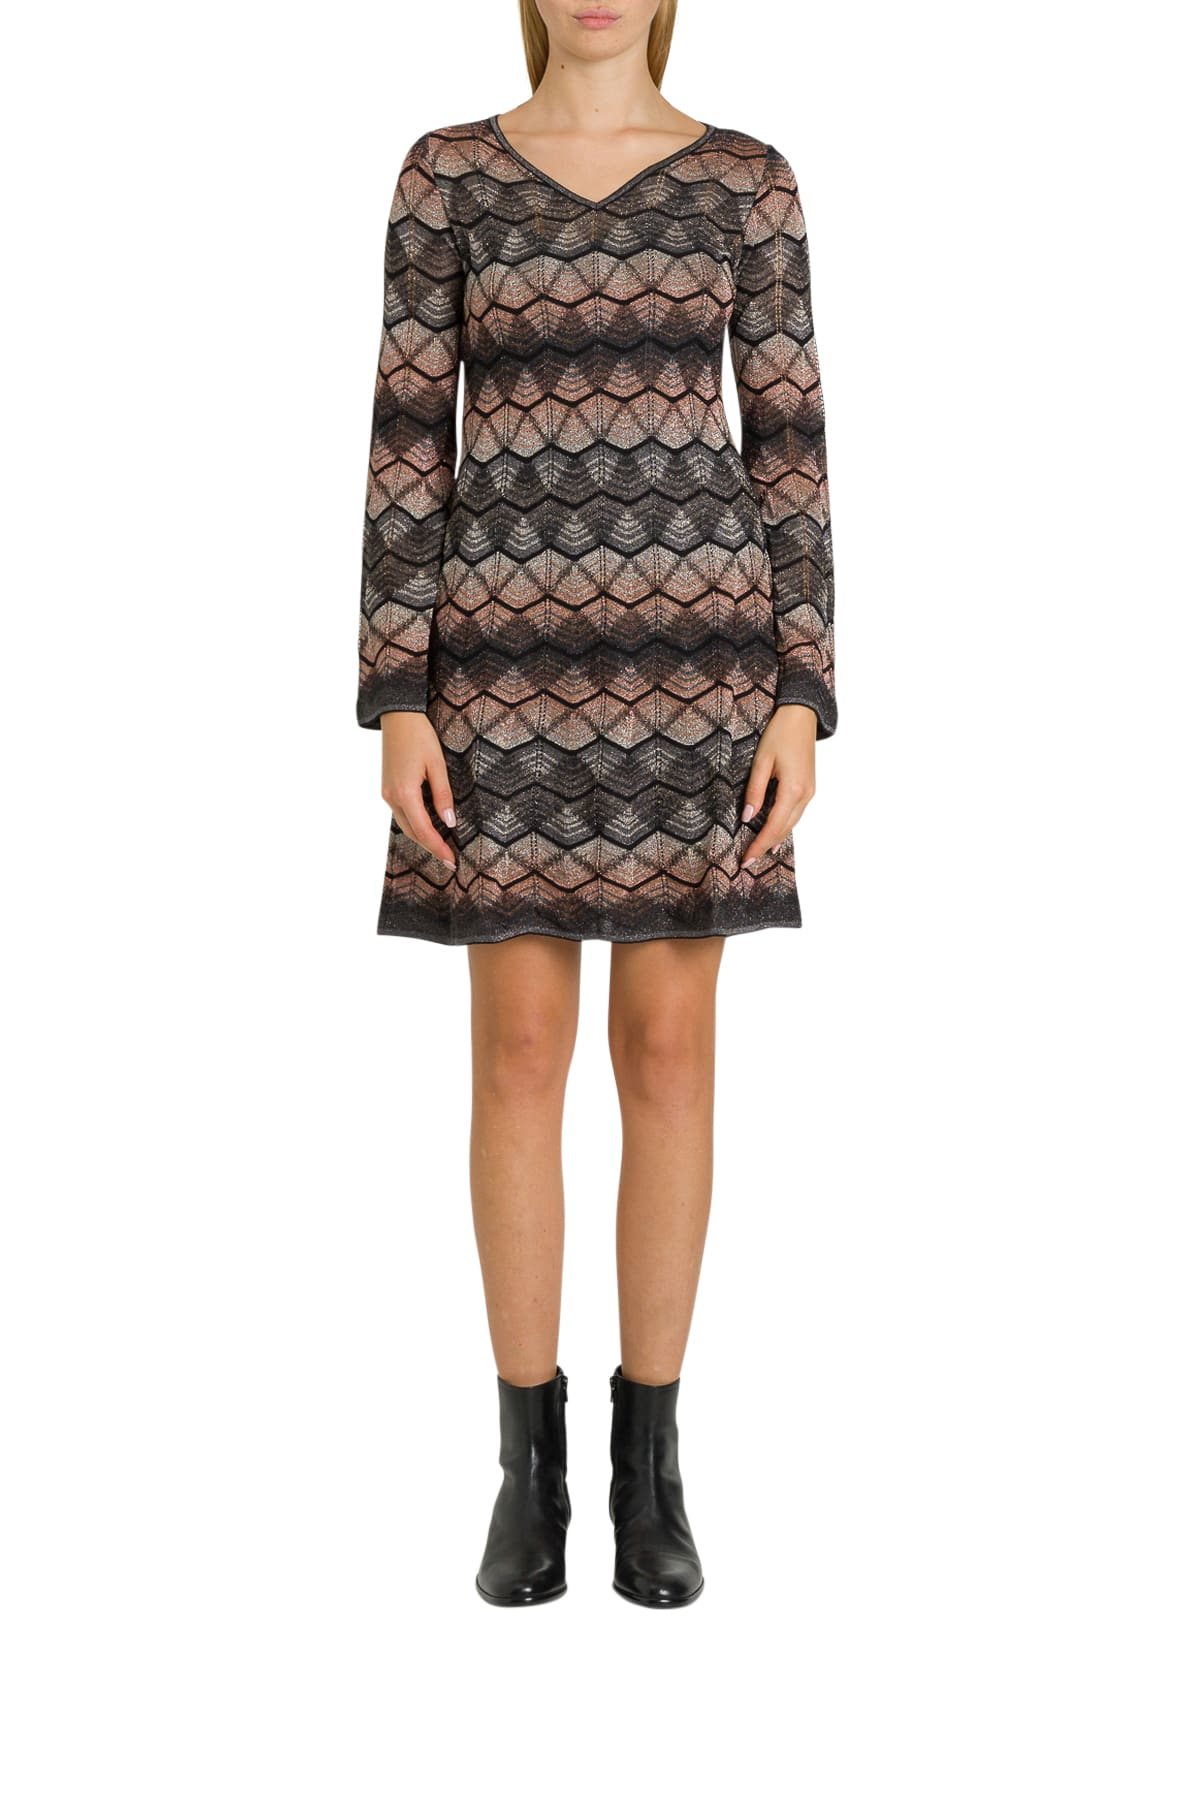 M Missoni Knitted Lurex Dress With Wave Motif